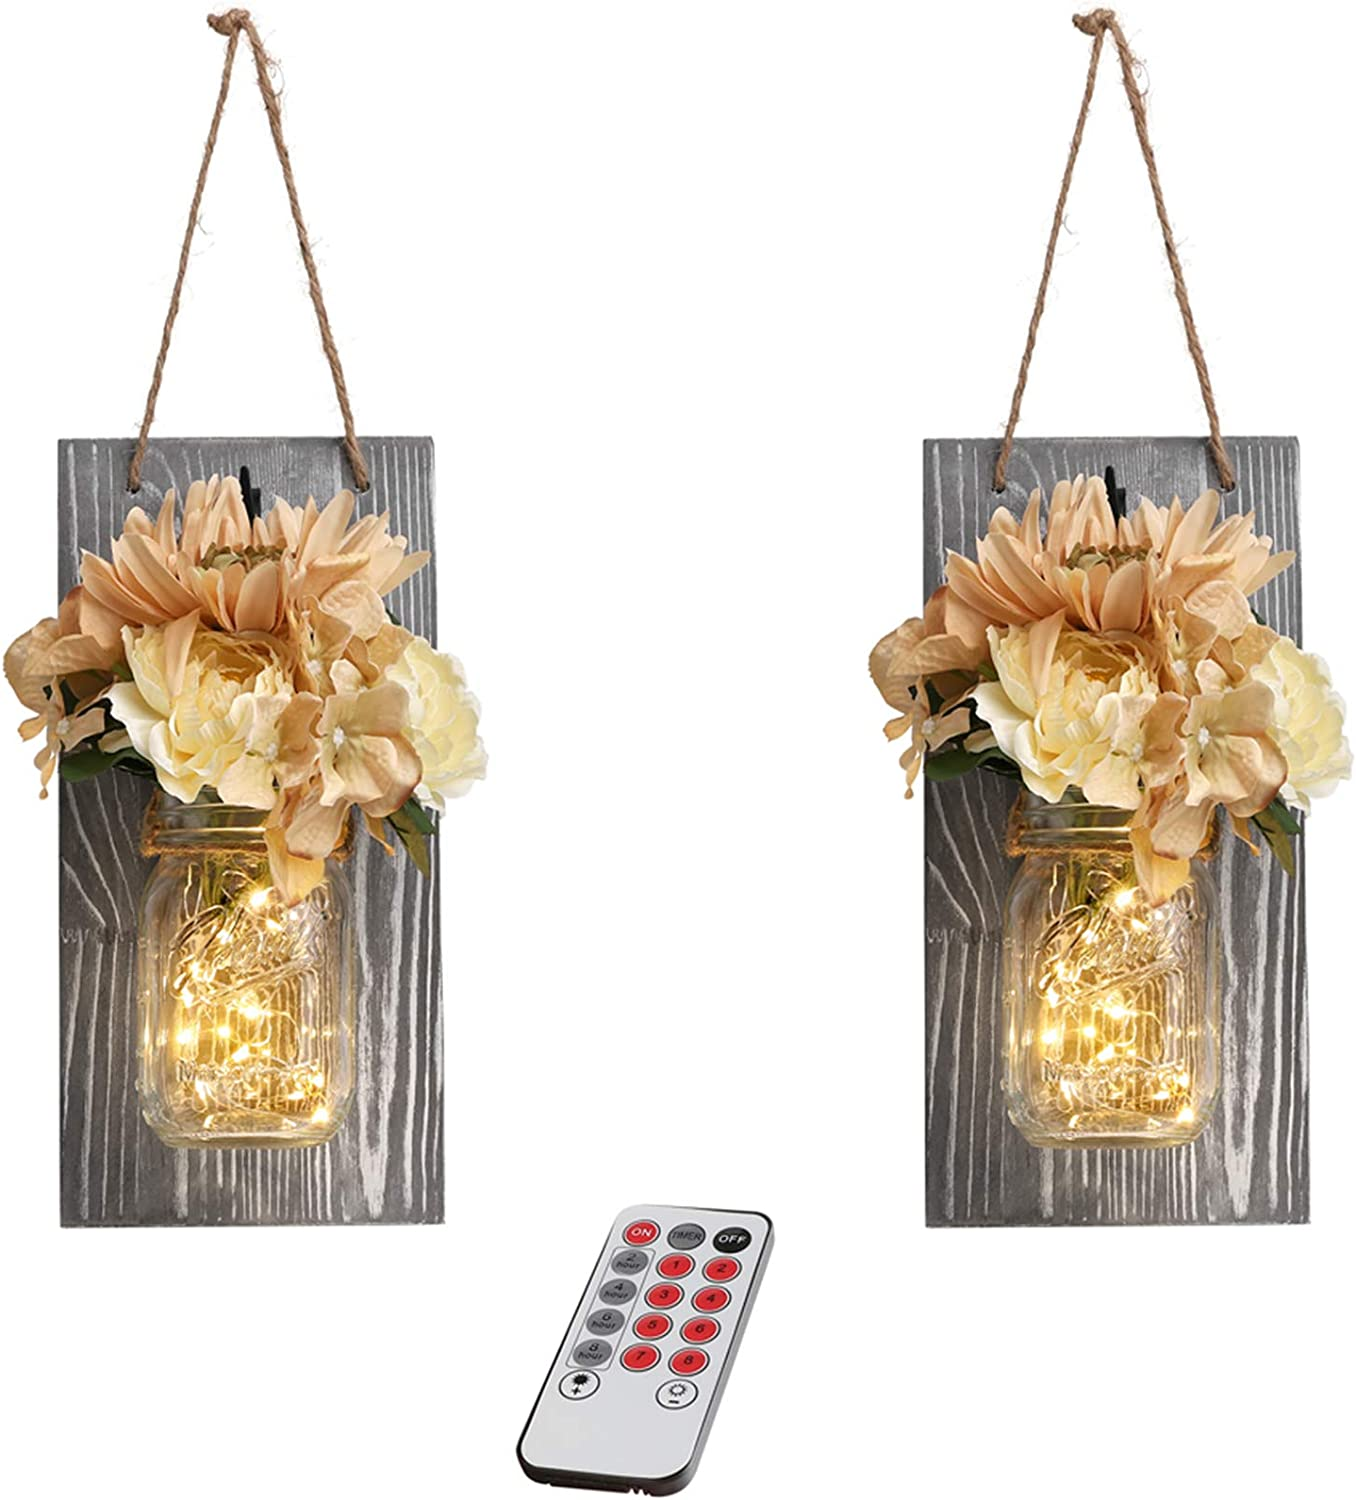 GBtroo Mason Jar Sconces Wall Decor with Remote Farmhouse Sconces Wall Lighting for Home Living Room Kitchen Bedroom Decoration with 6-Hour Timer LED Lights Flowers,Set of 2(Large, Gray)